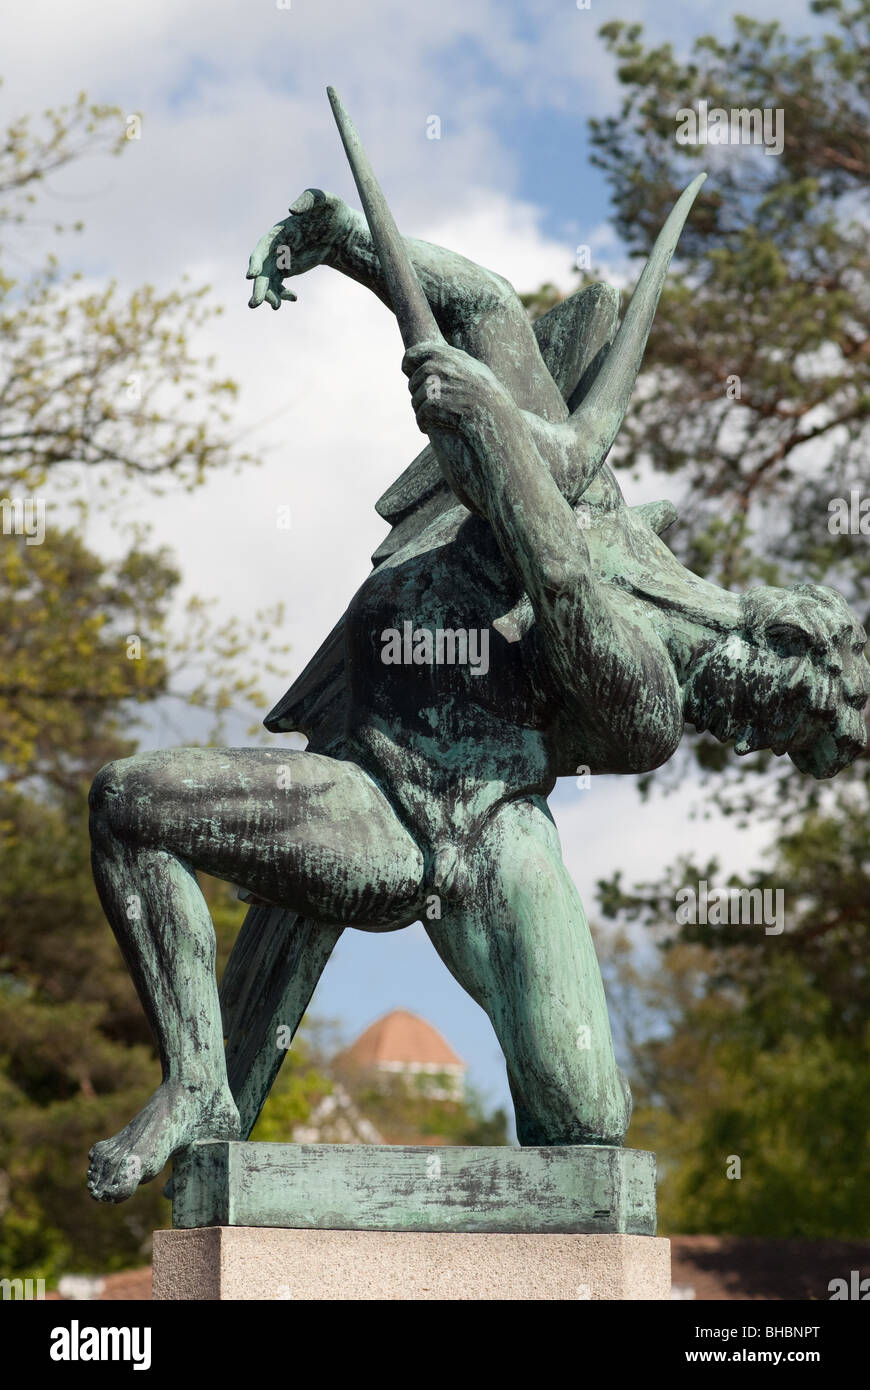 one of the angel musicians sculptures by carl milles in millesgarden - Stock Image